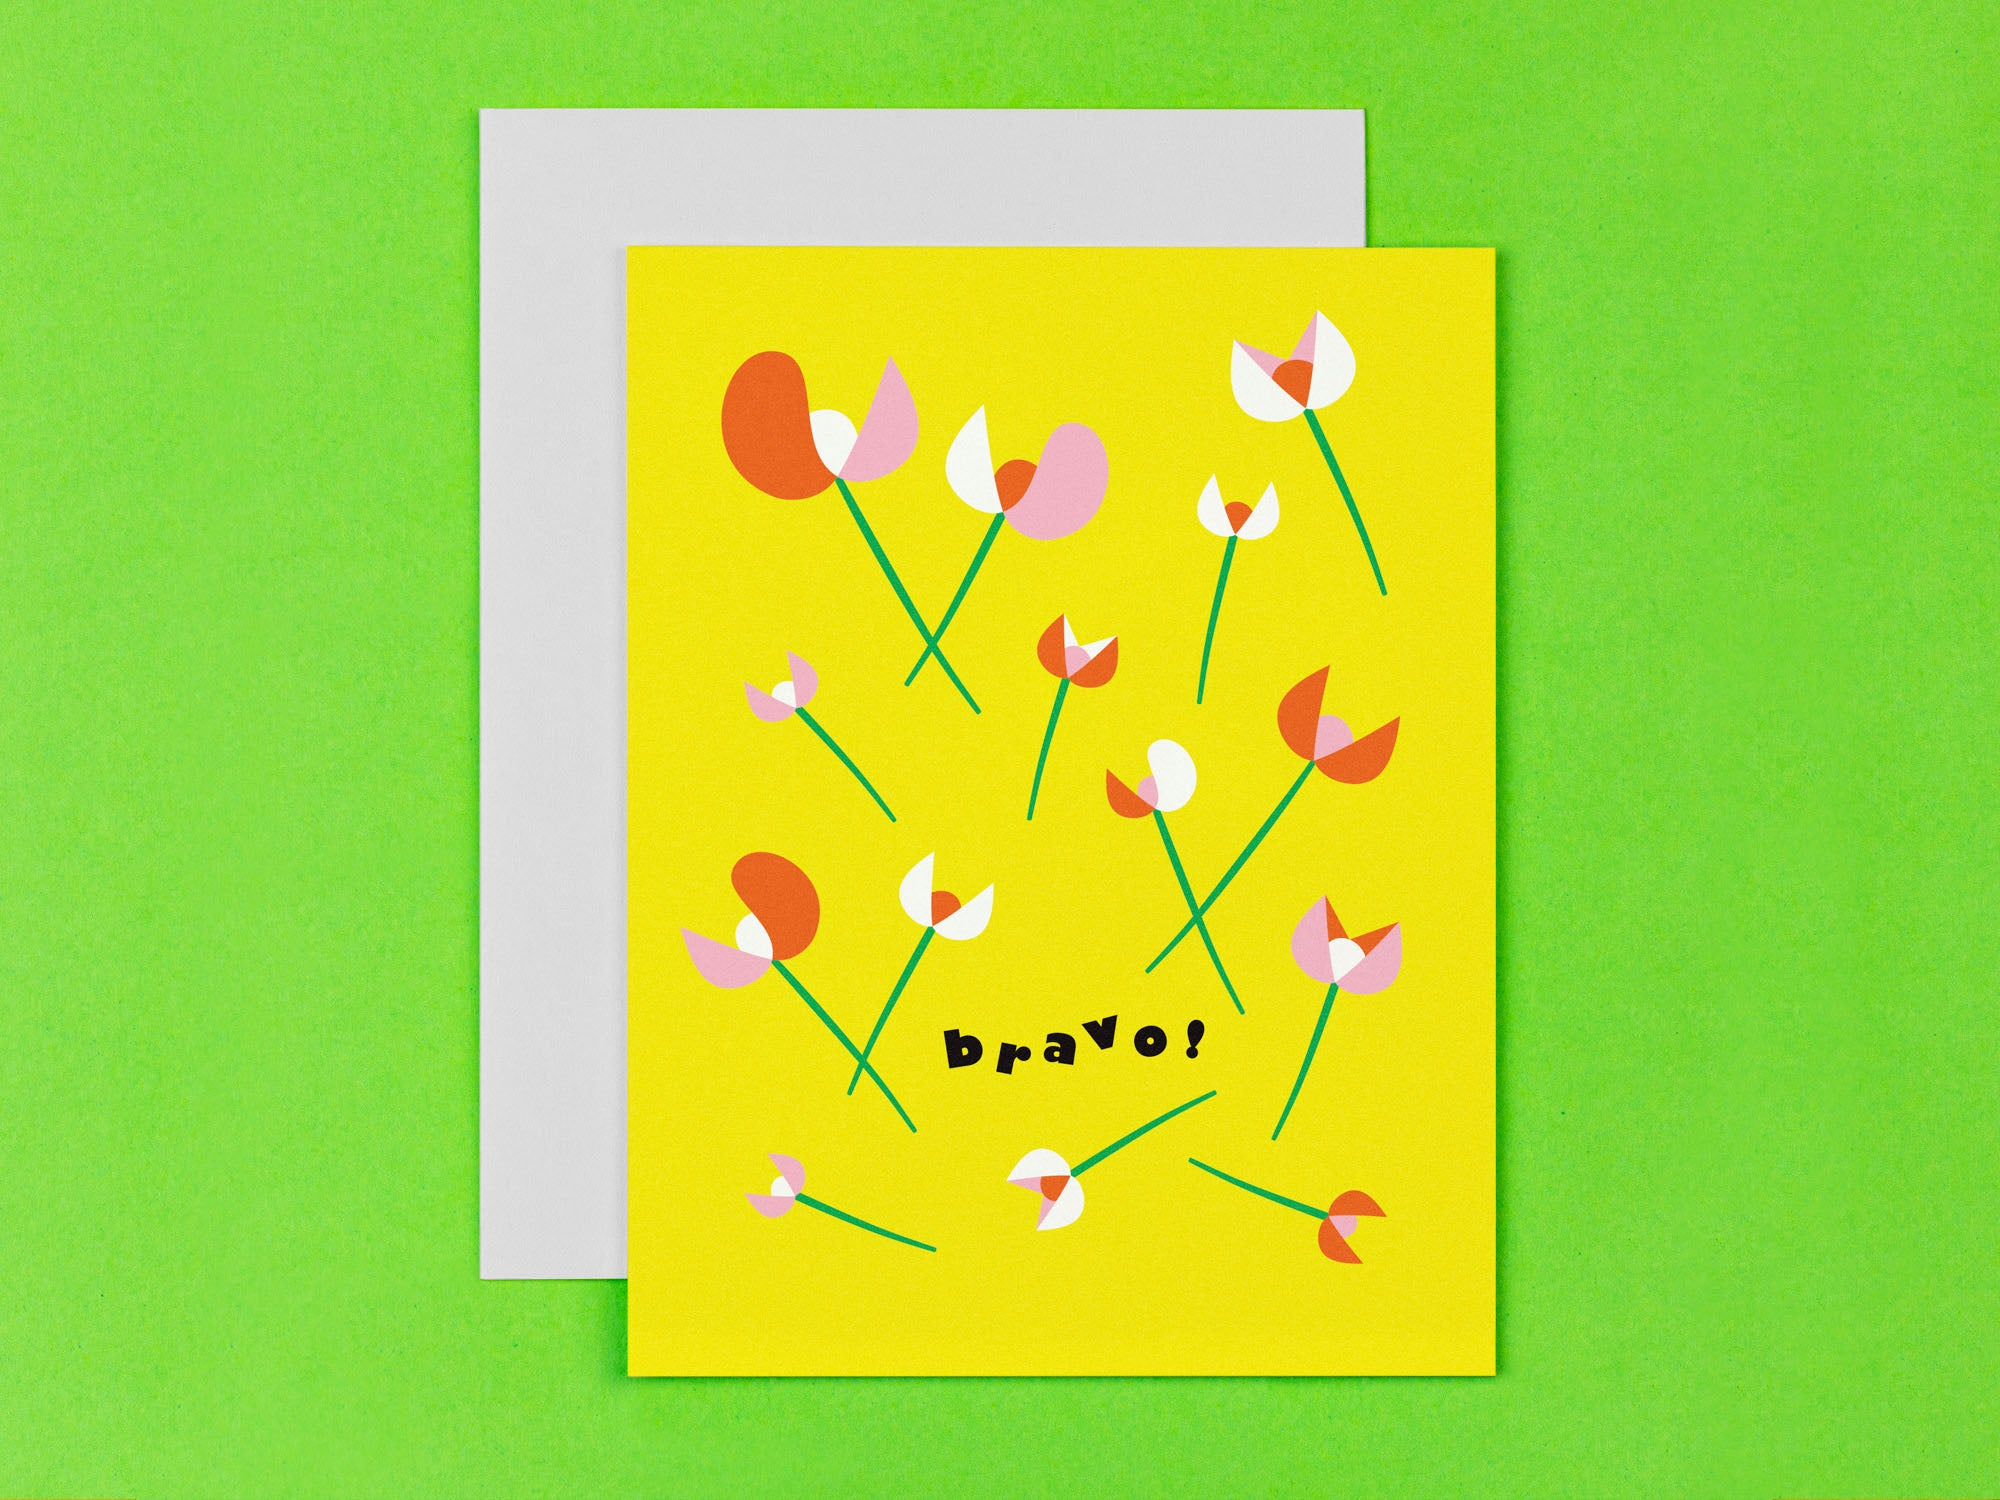 Bravo floral congratulations card with flowers strewn about. Made in USA by My Darlin' @mydarlin_bk